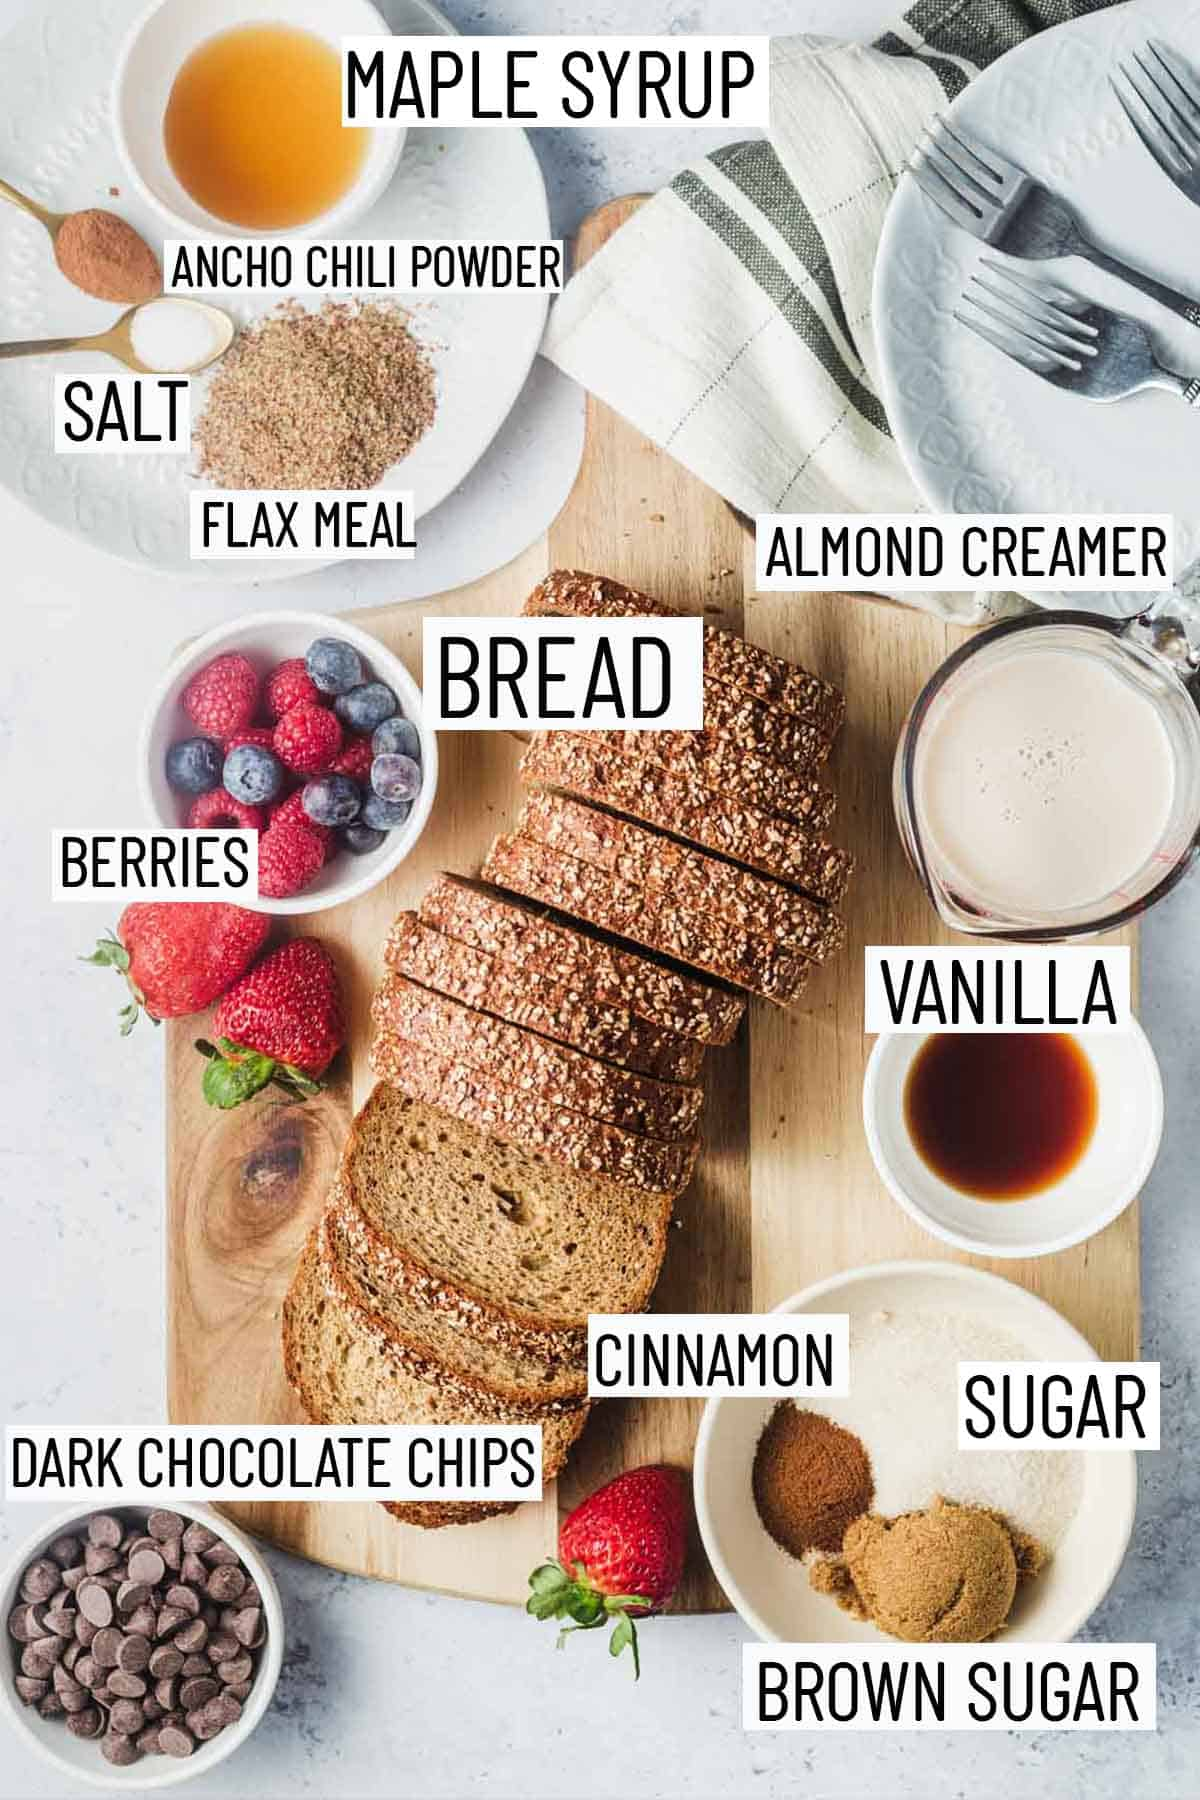 Flat lay image of portioned ingredients including sugar, vanilla, almond creamer, dark chocolate, bread, berries, flax seed, salt, ancho chili powder, maple syrup.